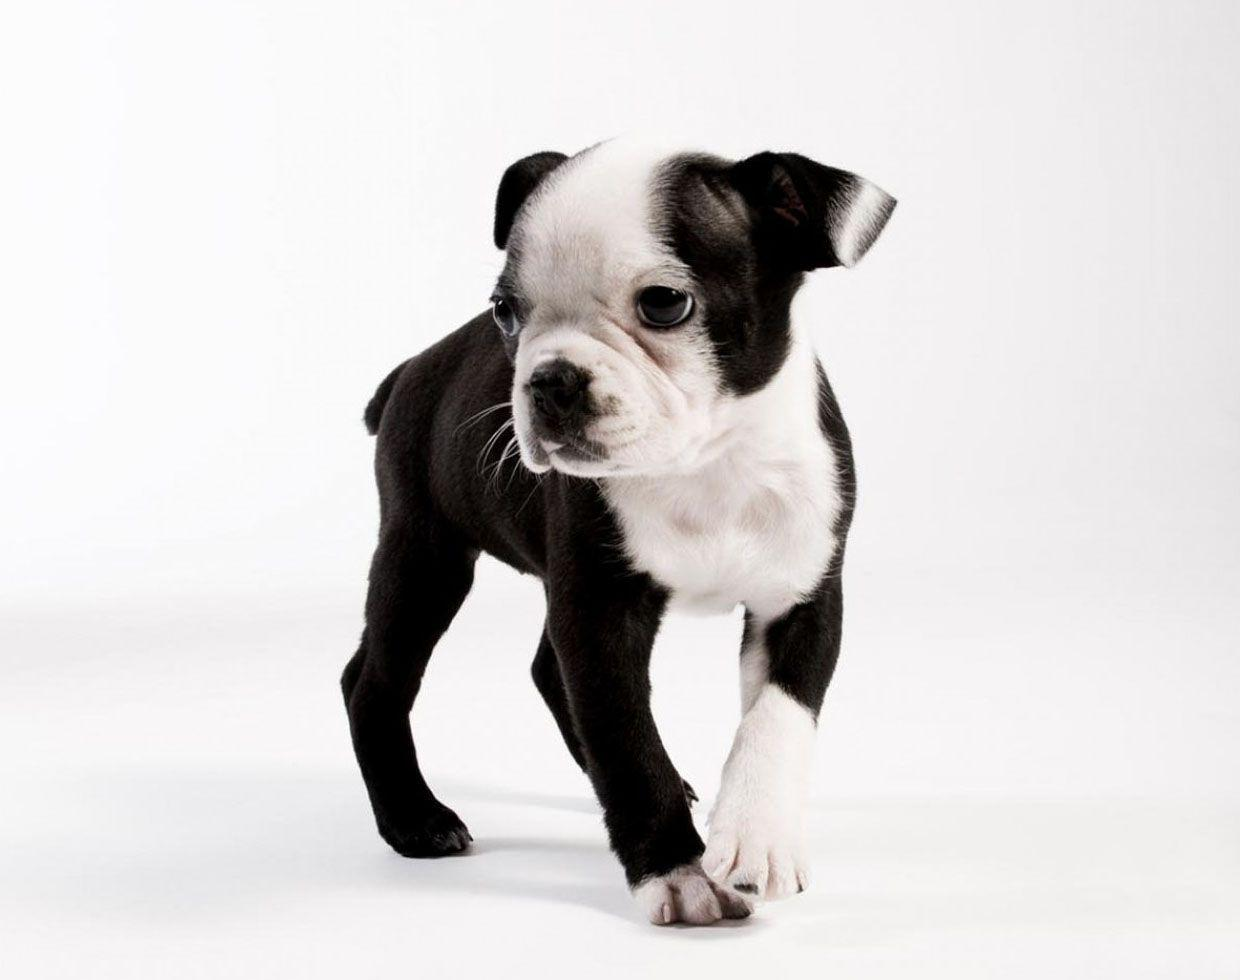 High Resolution Wallpapers of a Boston Terrier Puppy